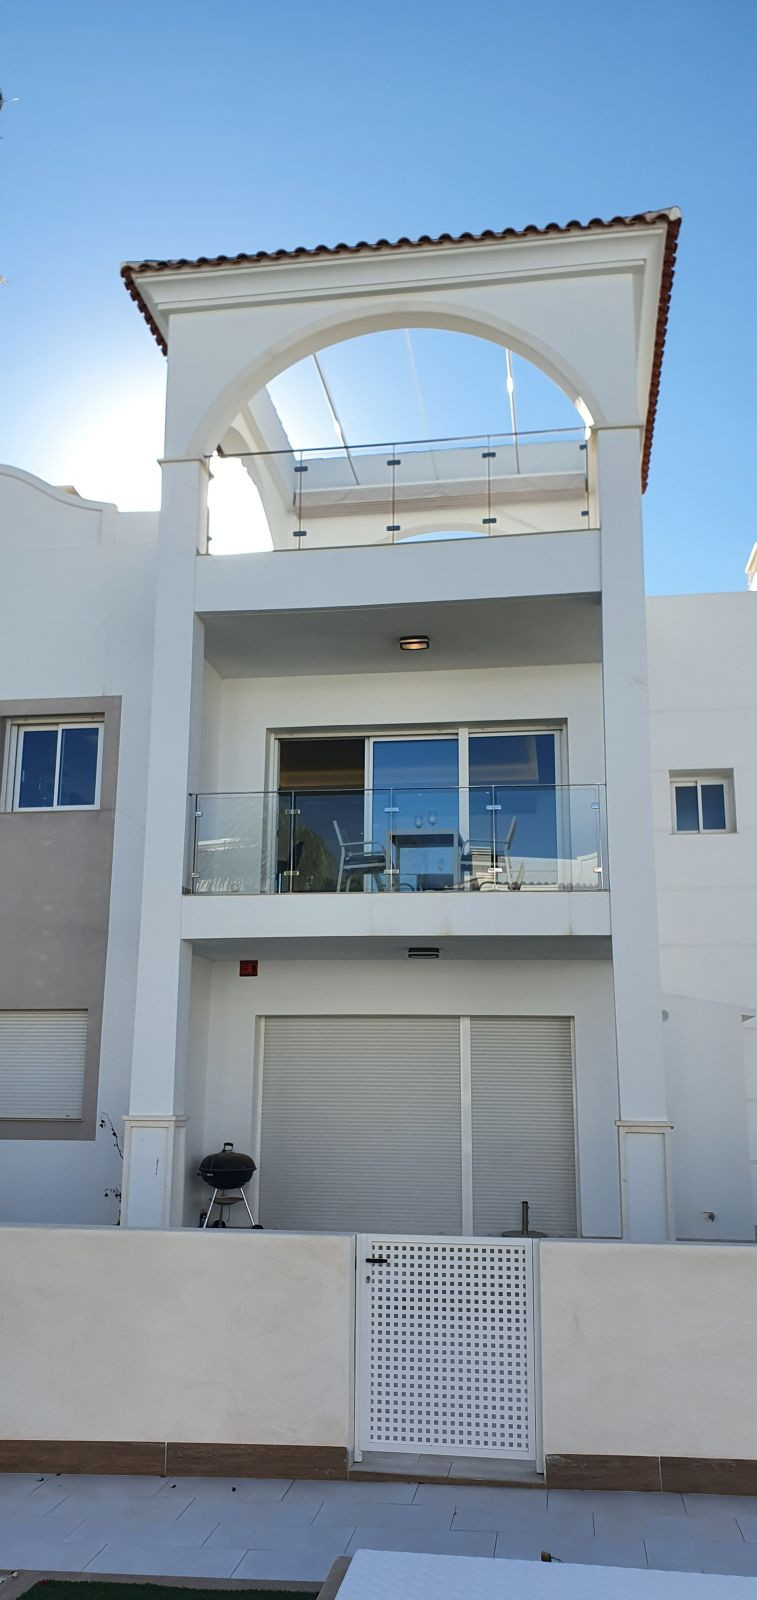 a beautiful duplex apartment with a very nice roof terrace. This is located in beautiful Torrevieja.,Spain